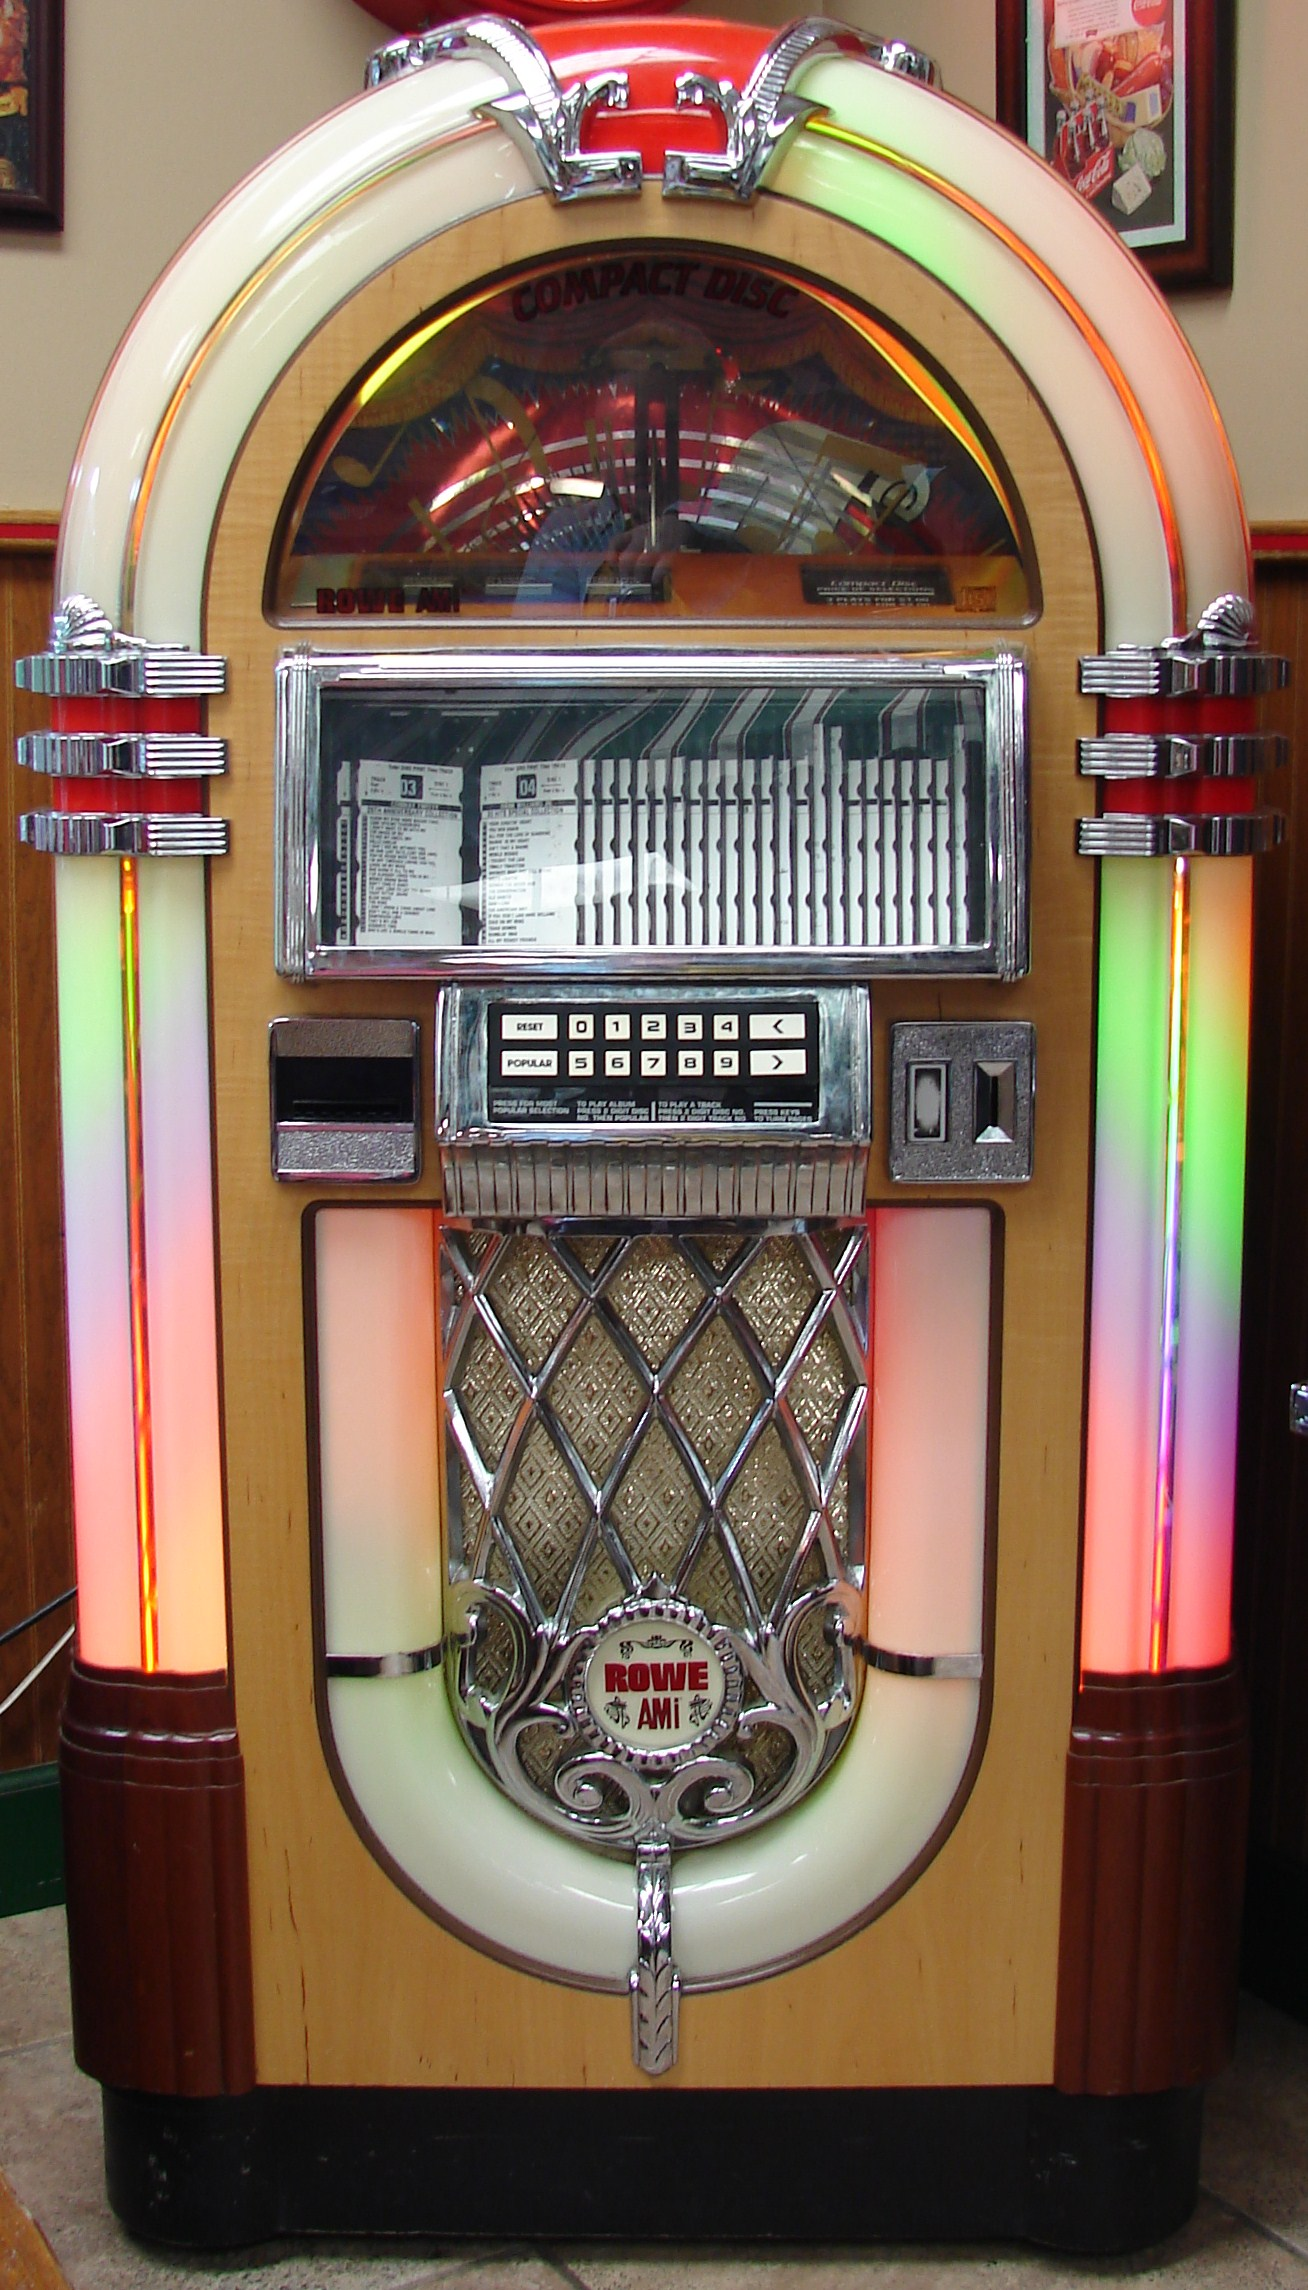 Rowe AMI Jukebox by FantasyStock